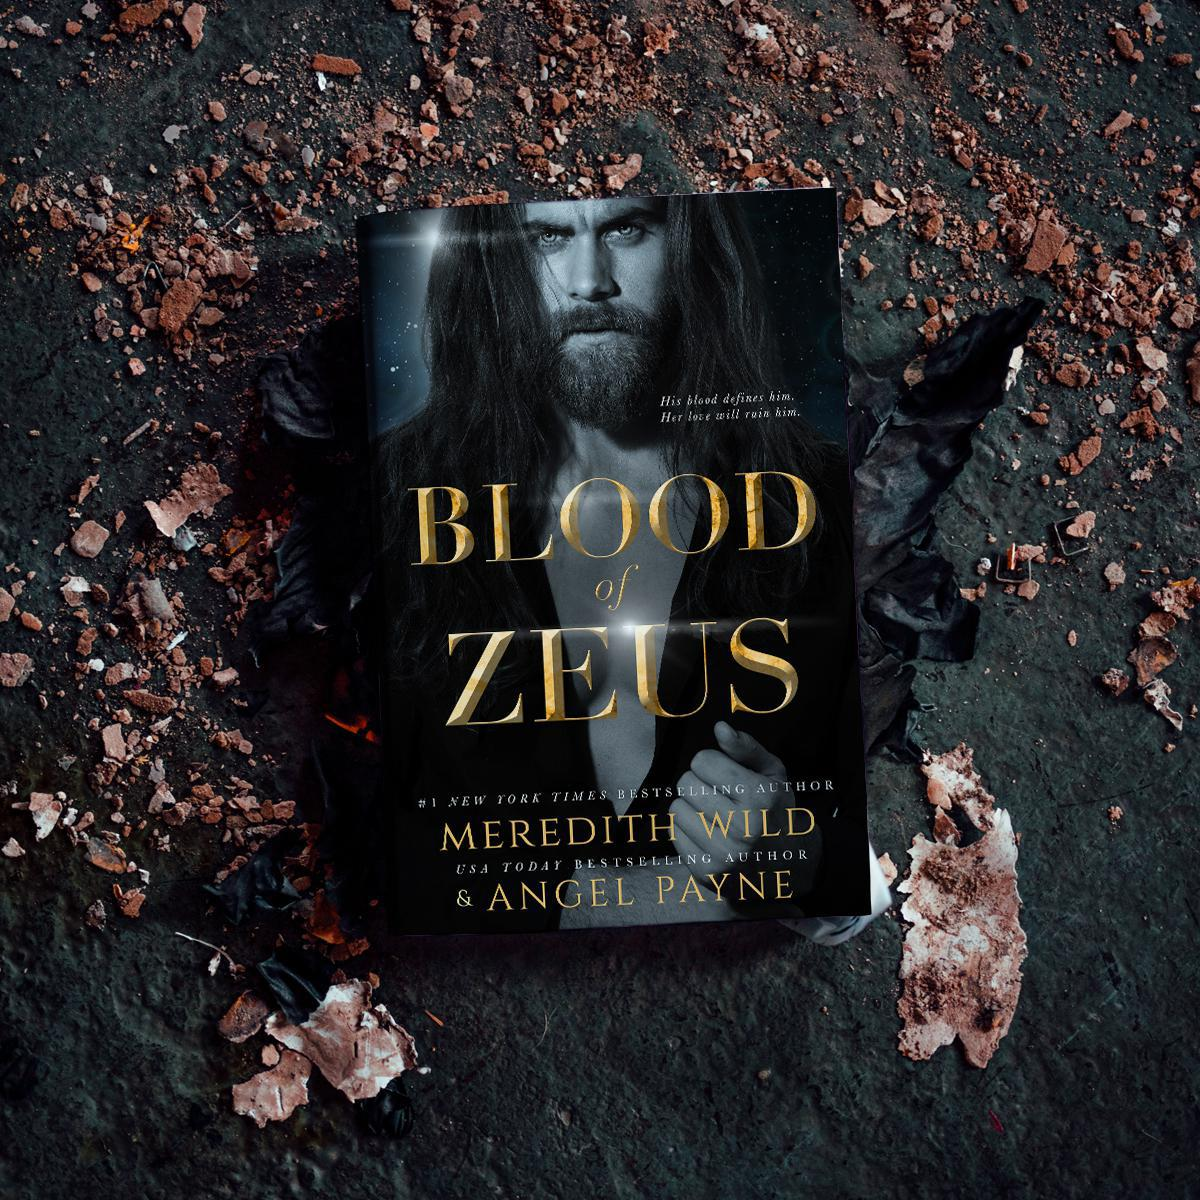 💗 Blood of Zeus by Meredith Wild & Angel Payne (Blood of Zeus #1)